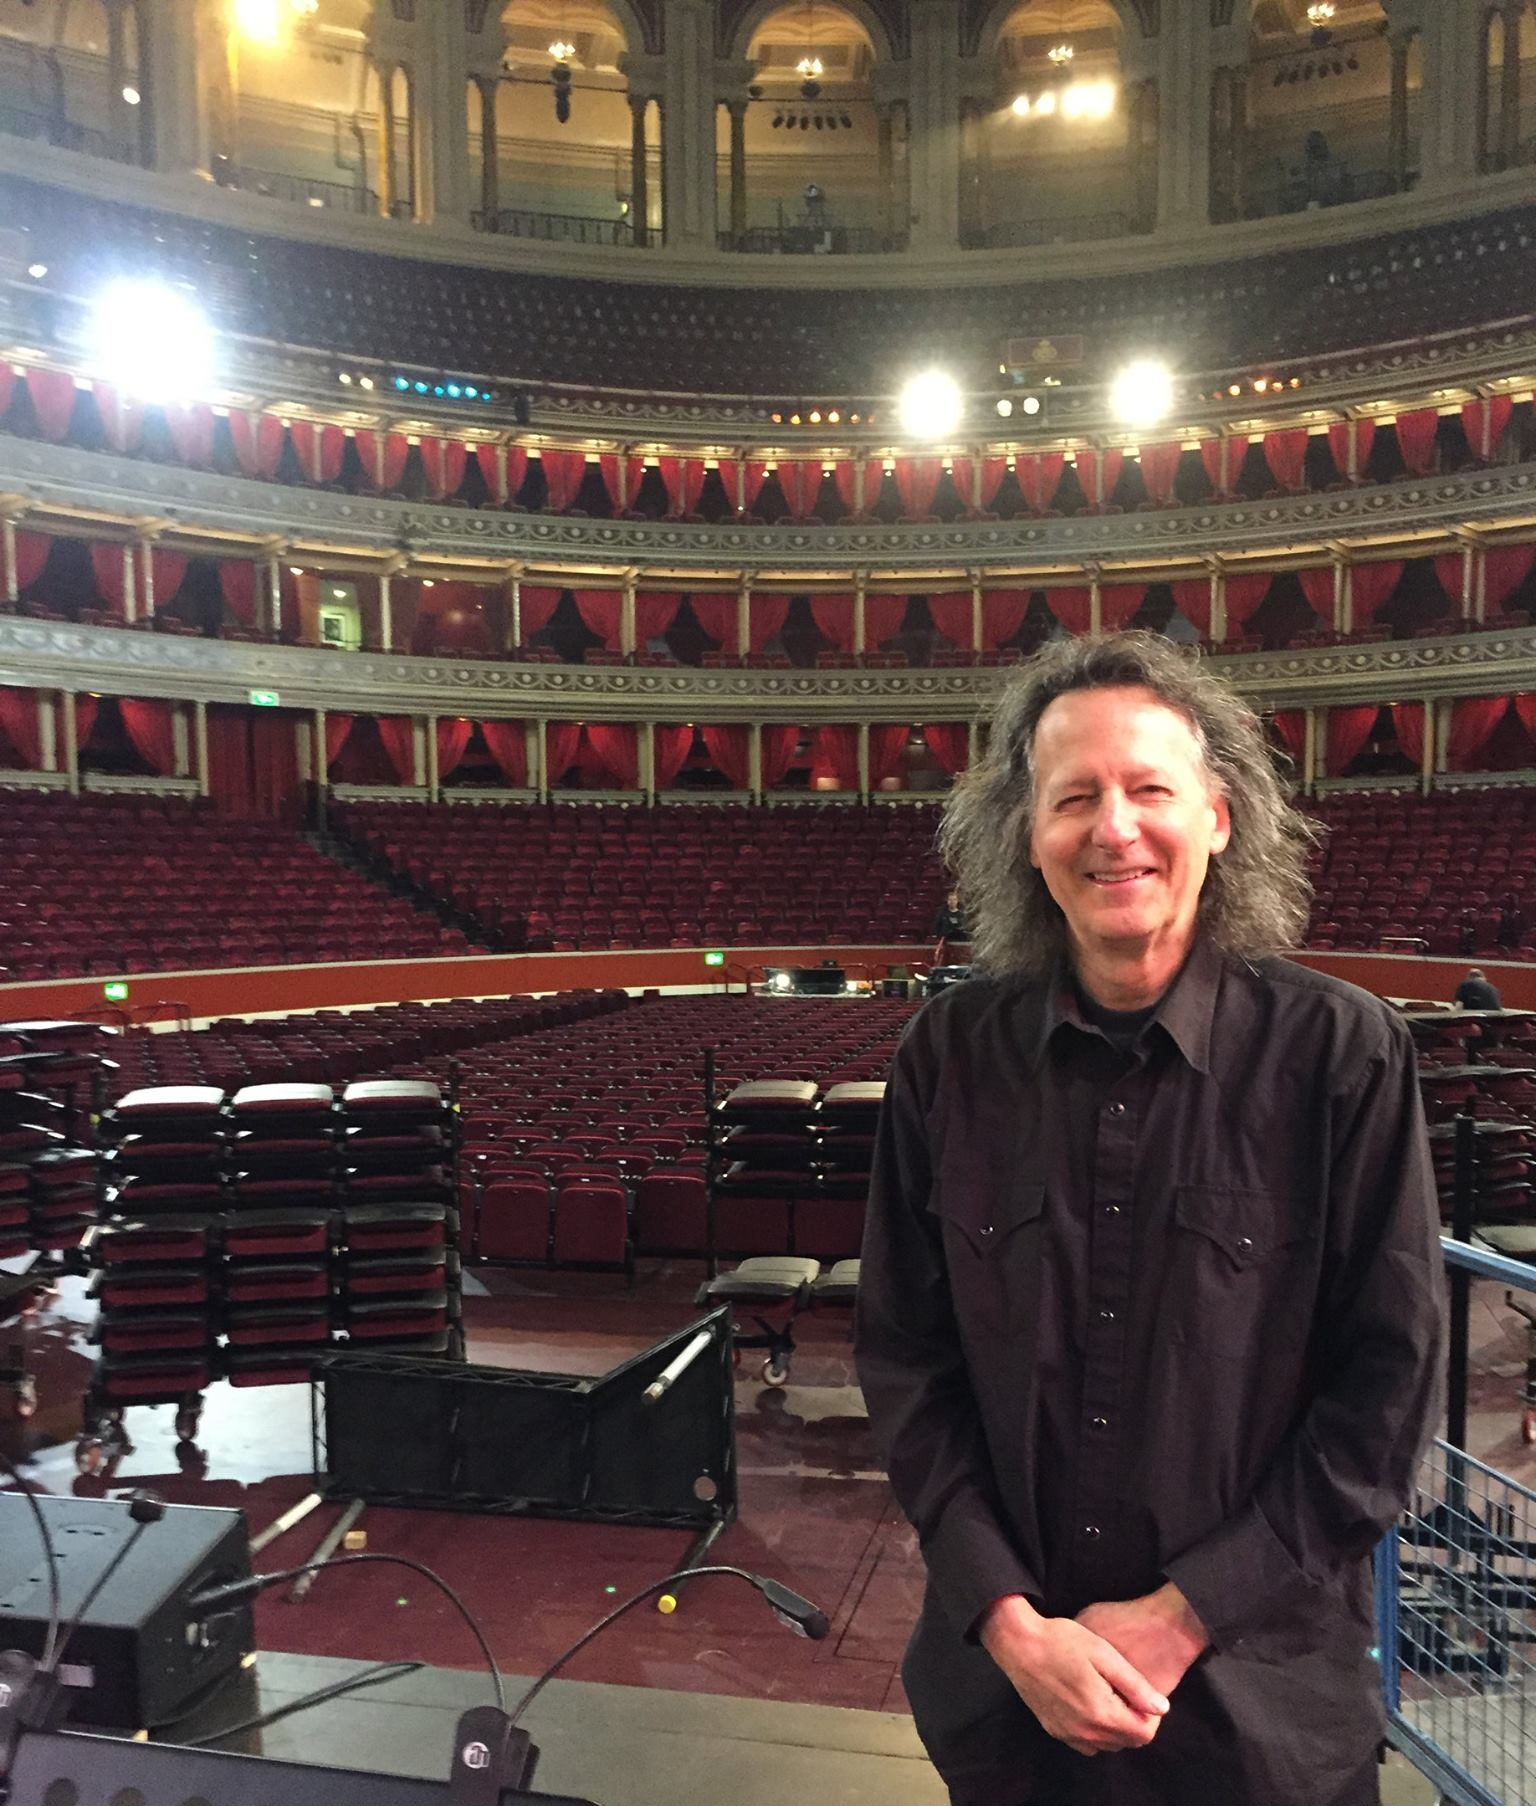 Clifford at Royal Albert Hall